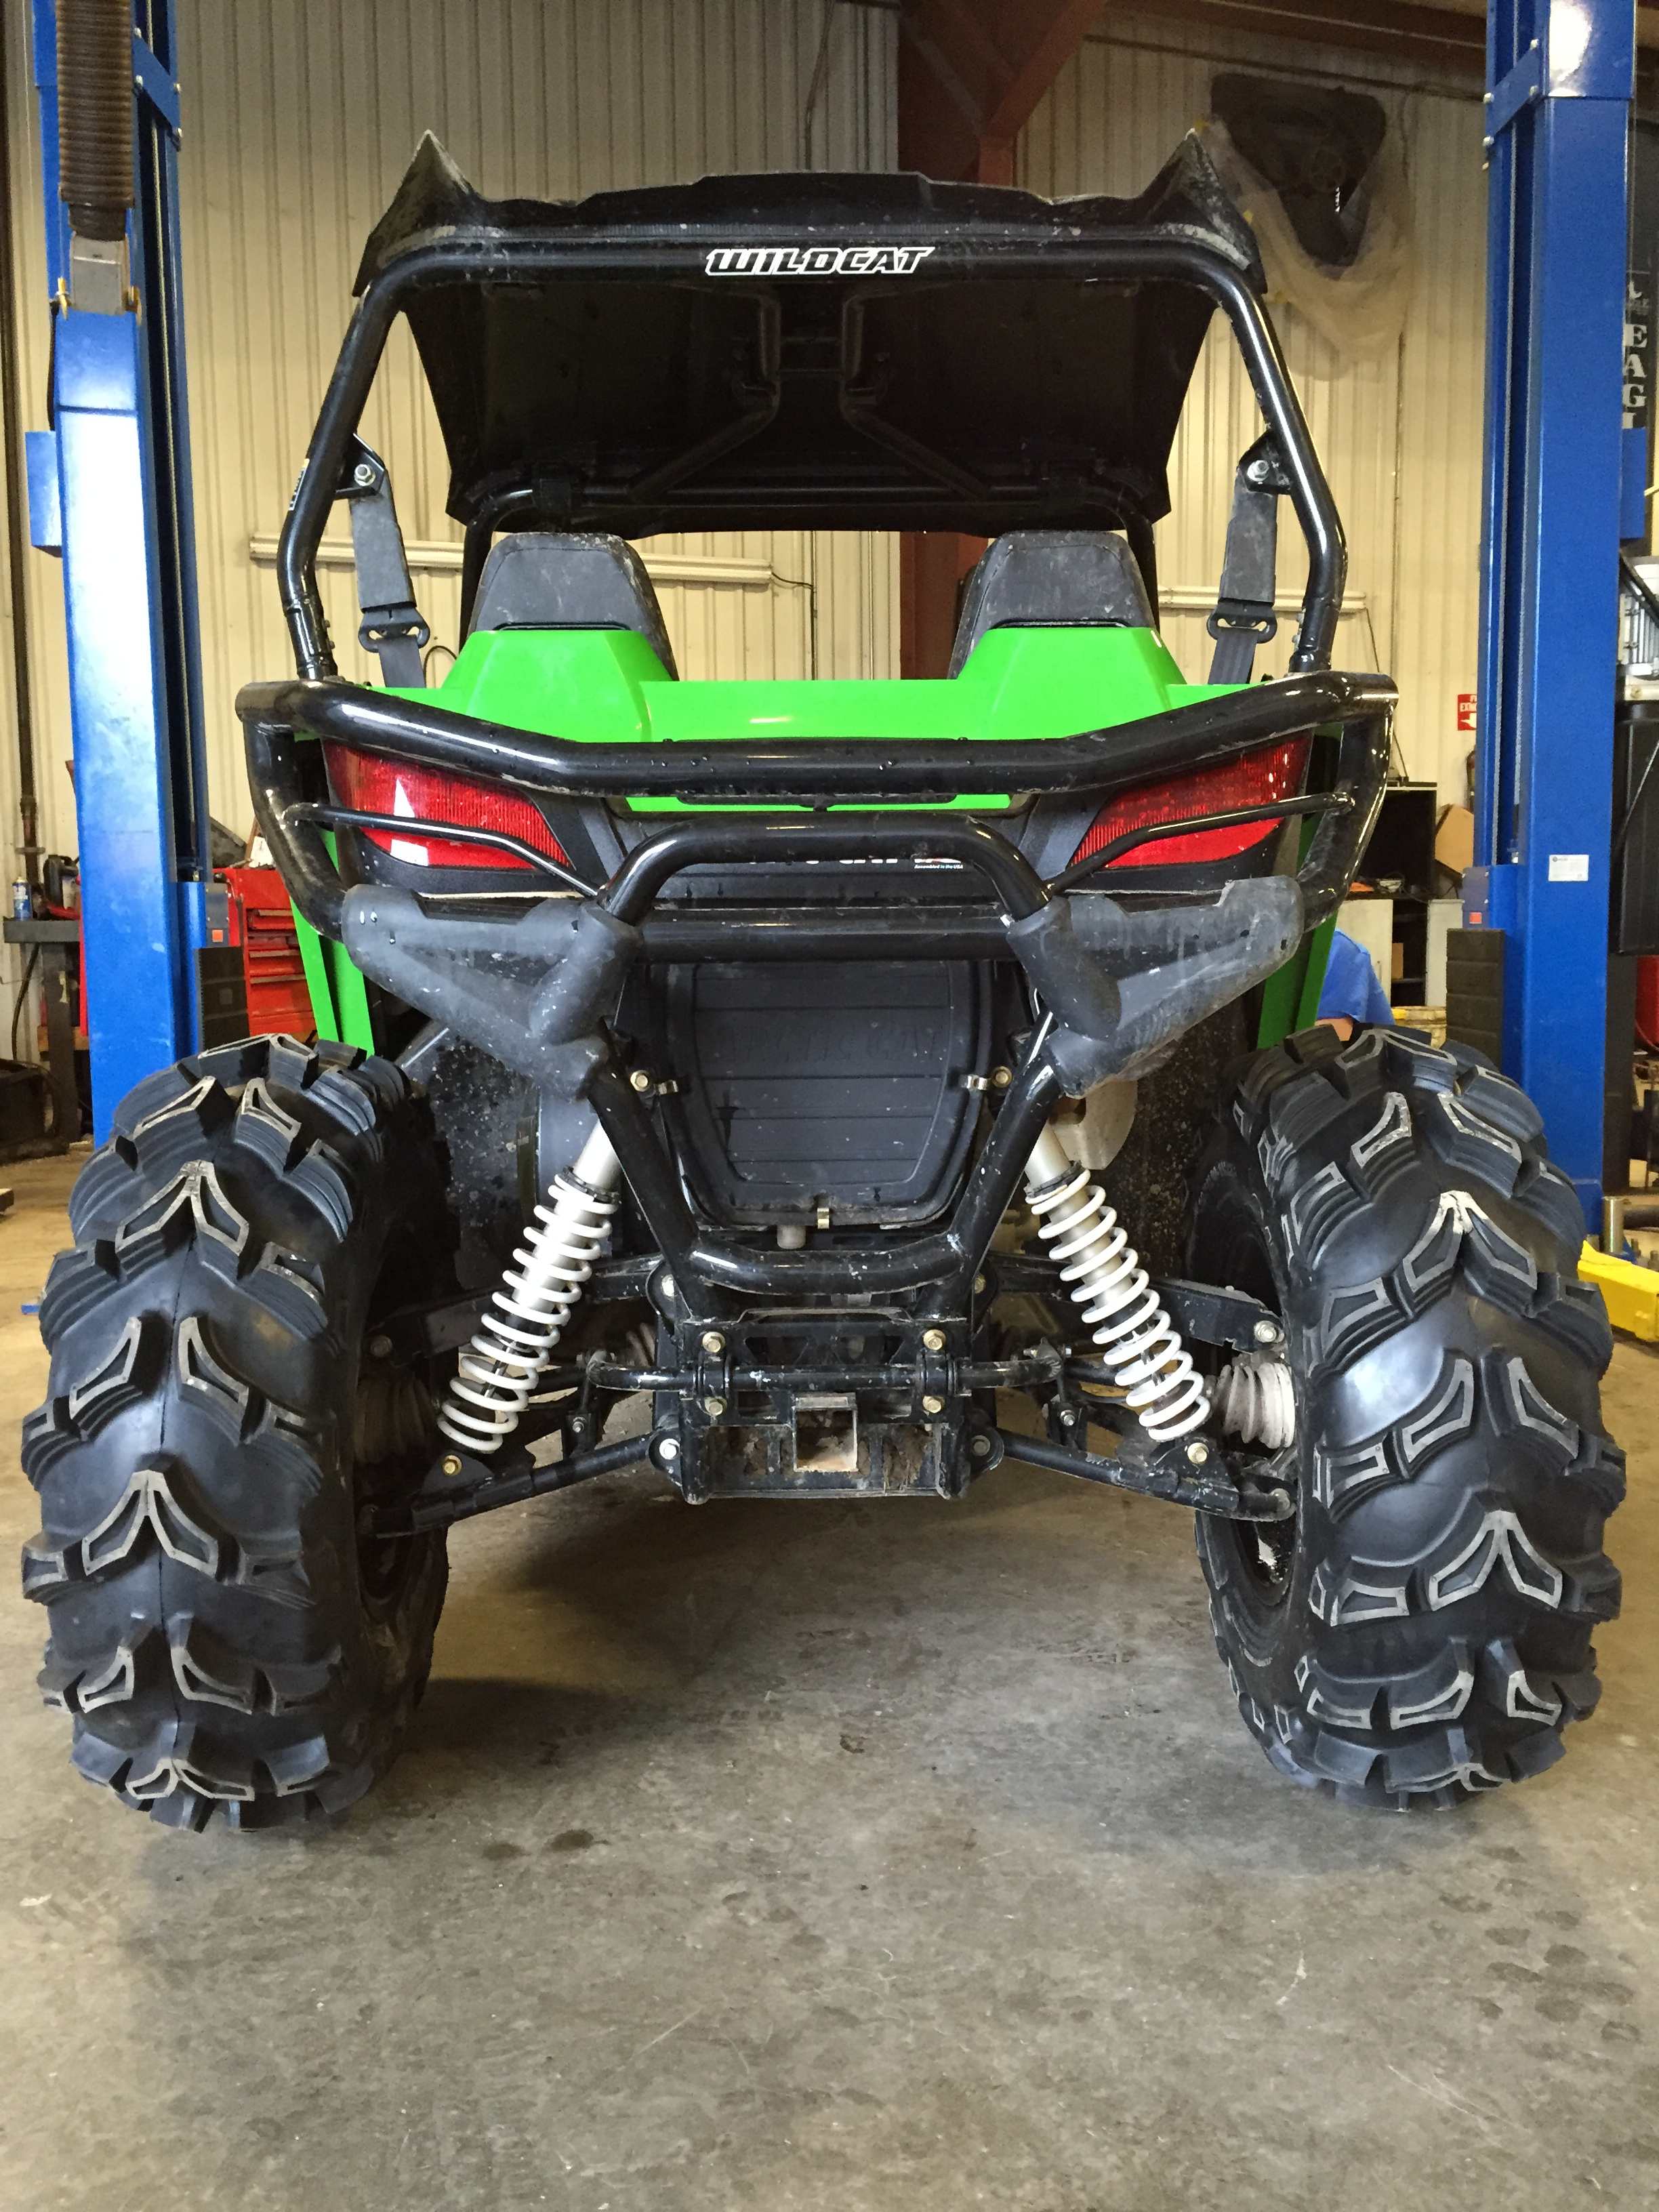 How Much Is A Wheel Alignment >> Wildcat Trail Ground Clearance; Bigger tires or Lift Kit